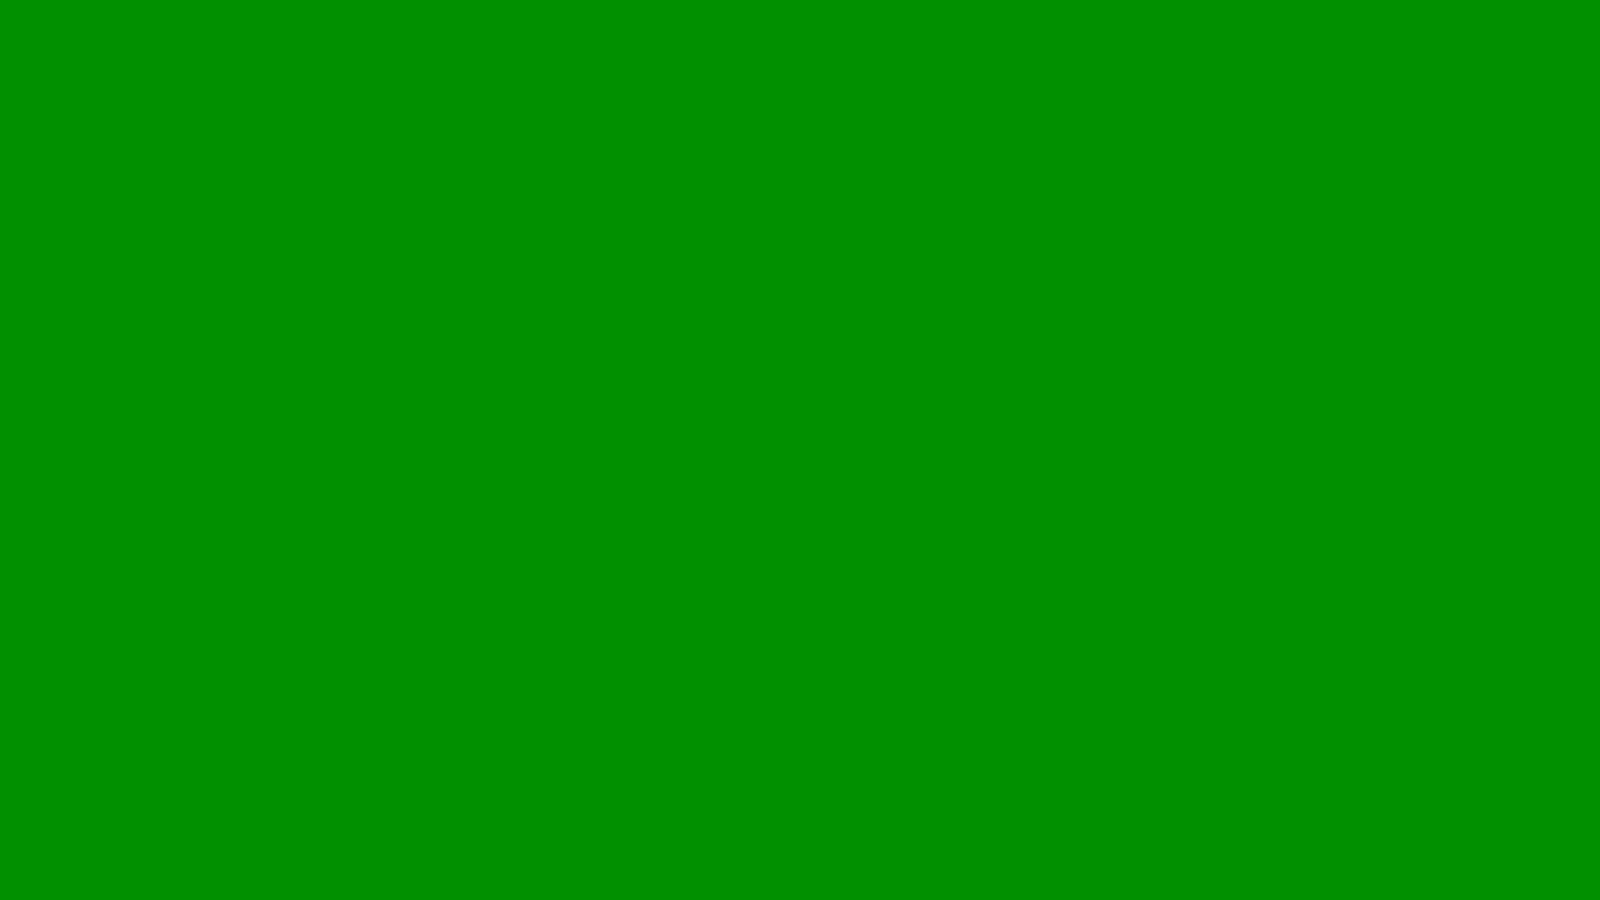 1600x900 Islamic Green Solid Color Background